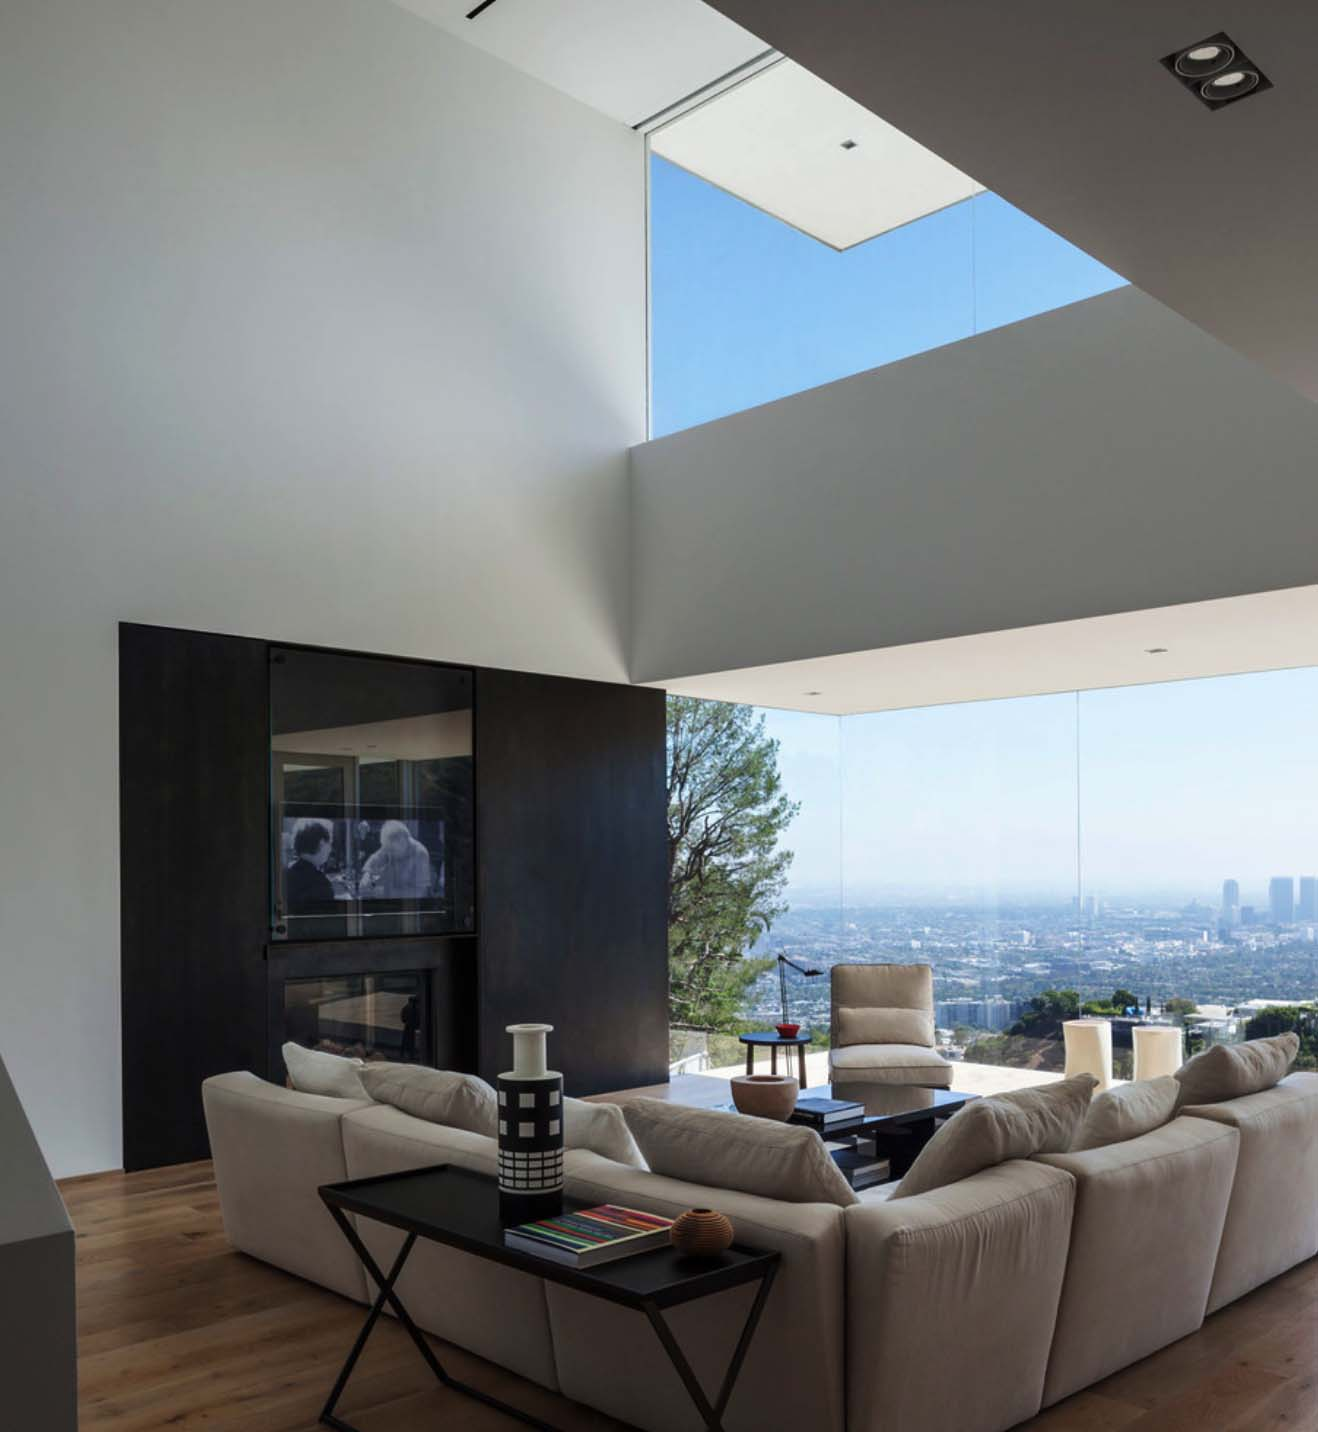 Rooms With Skyline Views-11-1 Kindesign